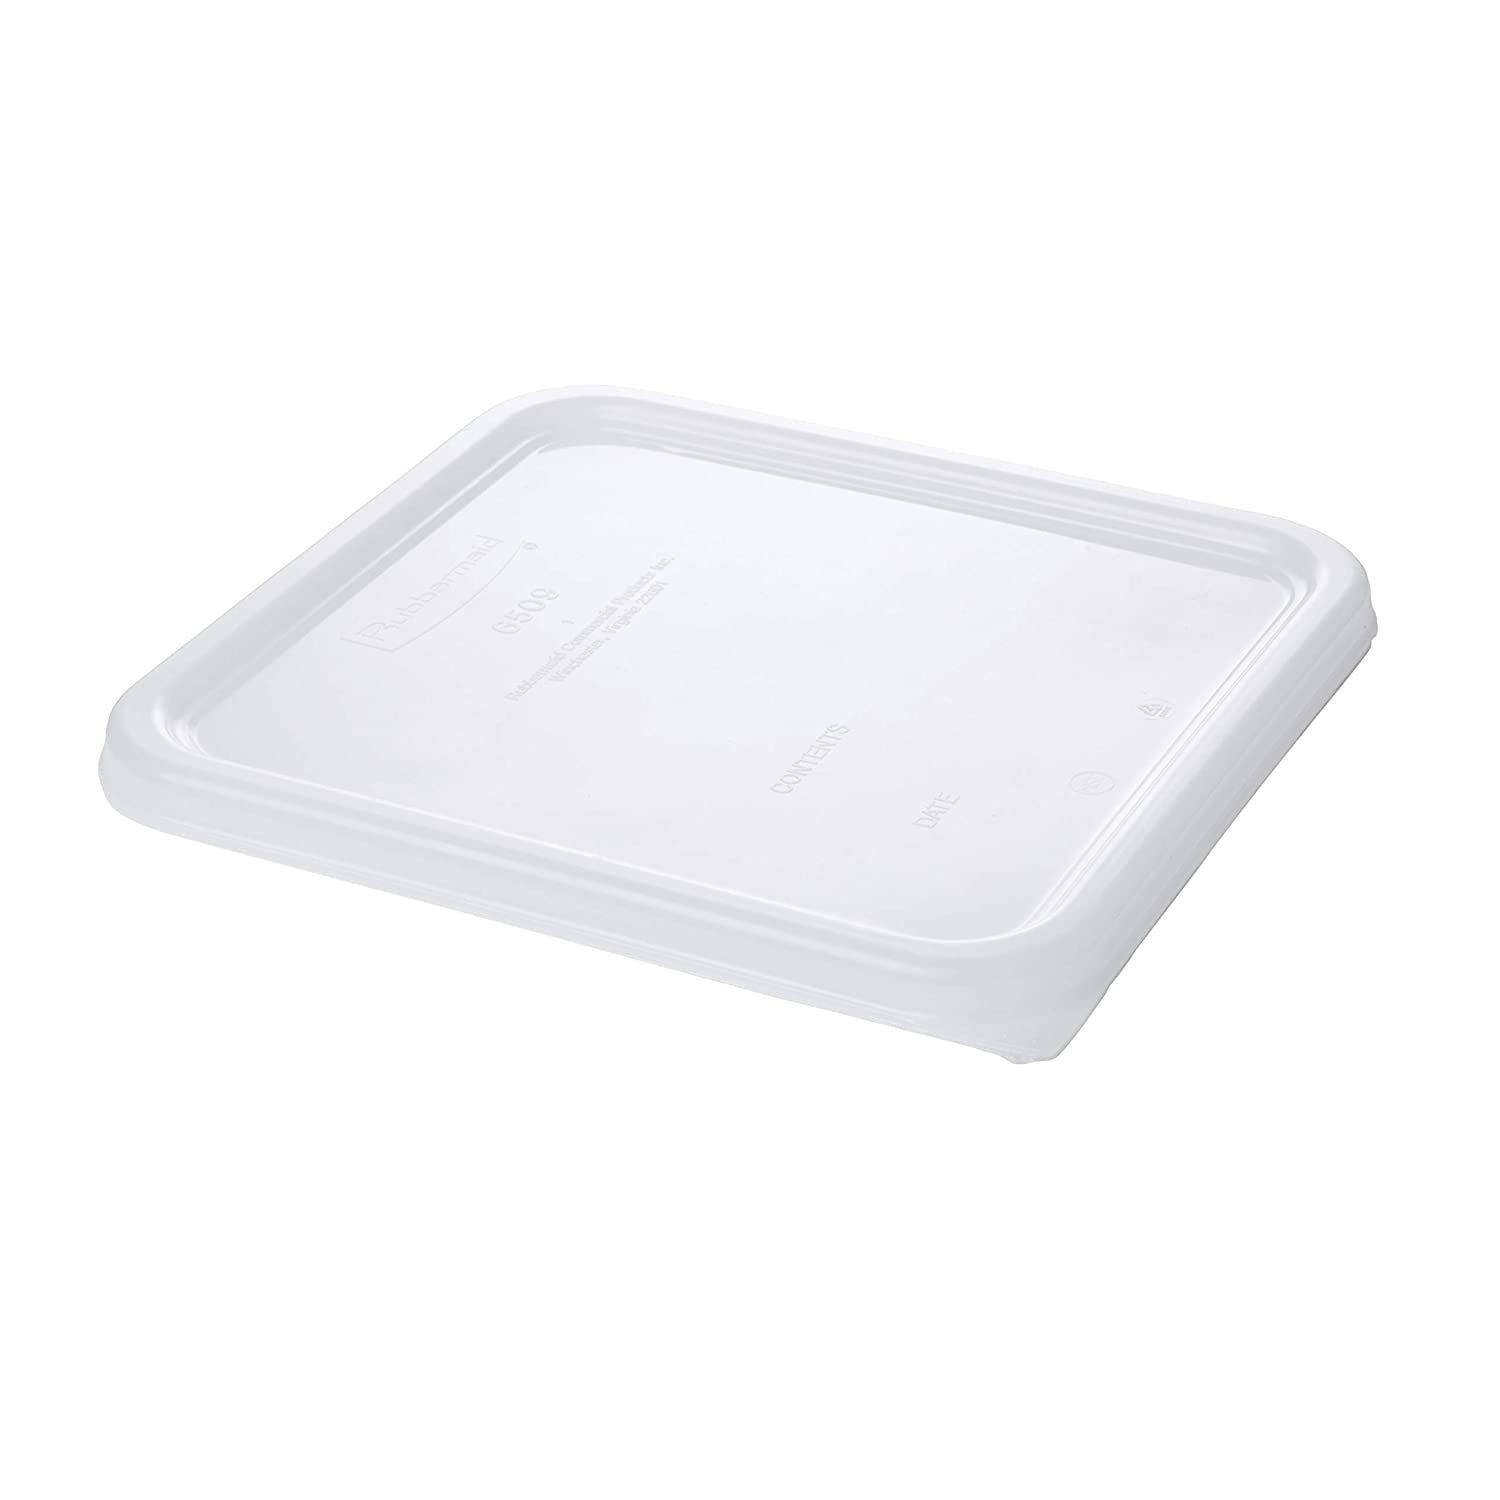 Rubbermaid Commercial Products Small Lid Ranking TOP5 For 8 2 San Antonio Mall Qt. And 6 4